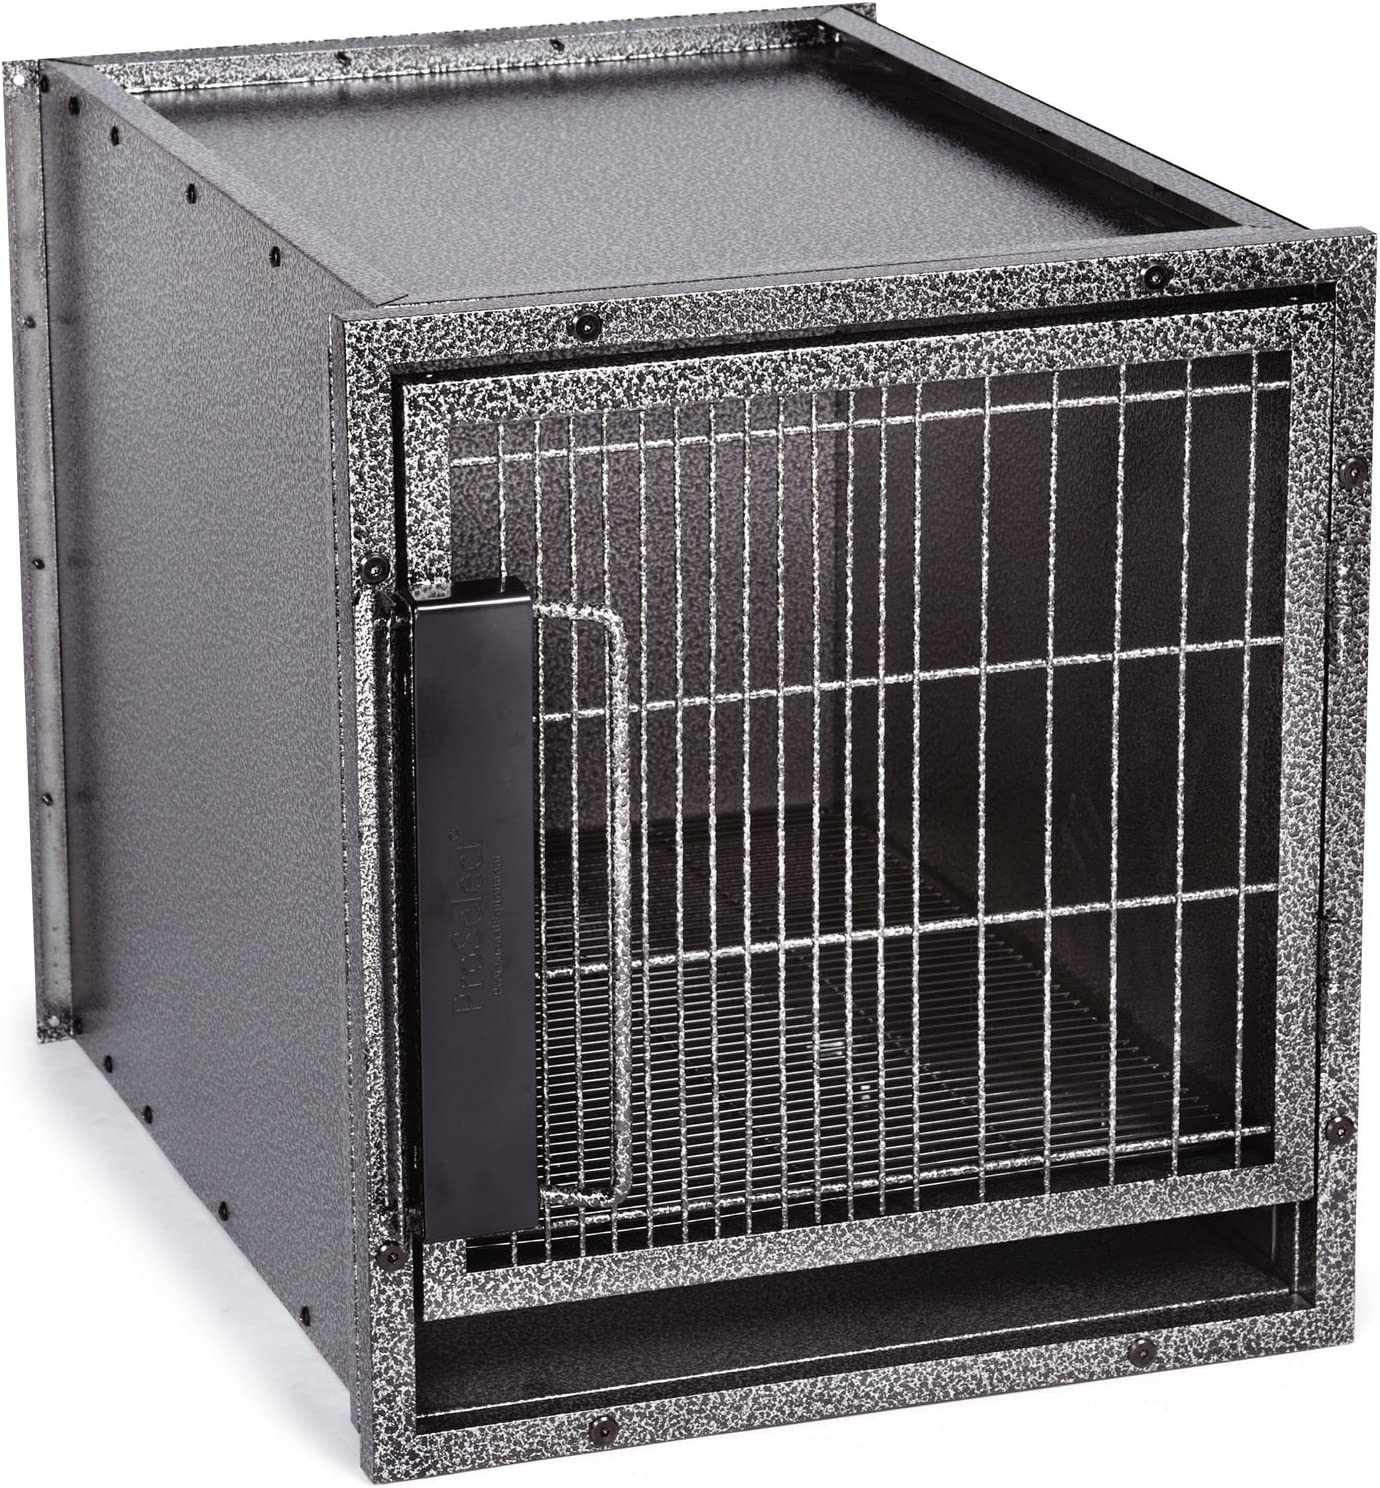 Pro Select Modular Cage Kennel Graphite New Recommended arrival